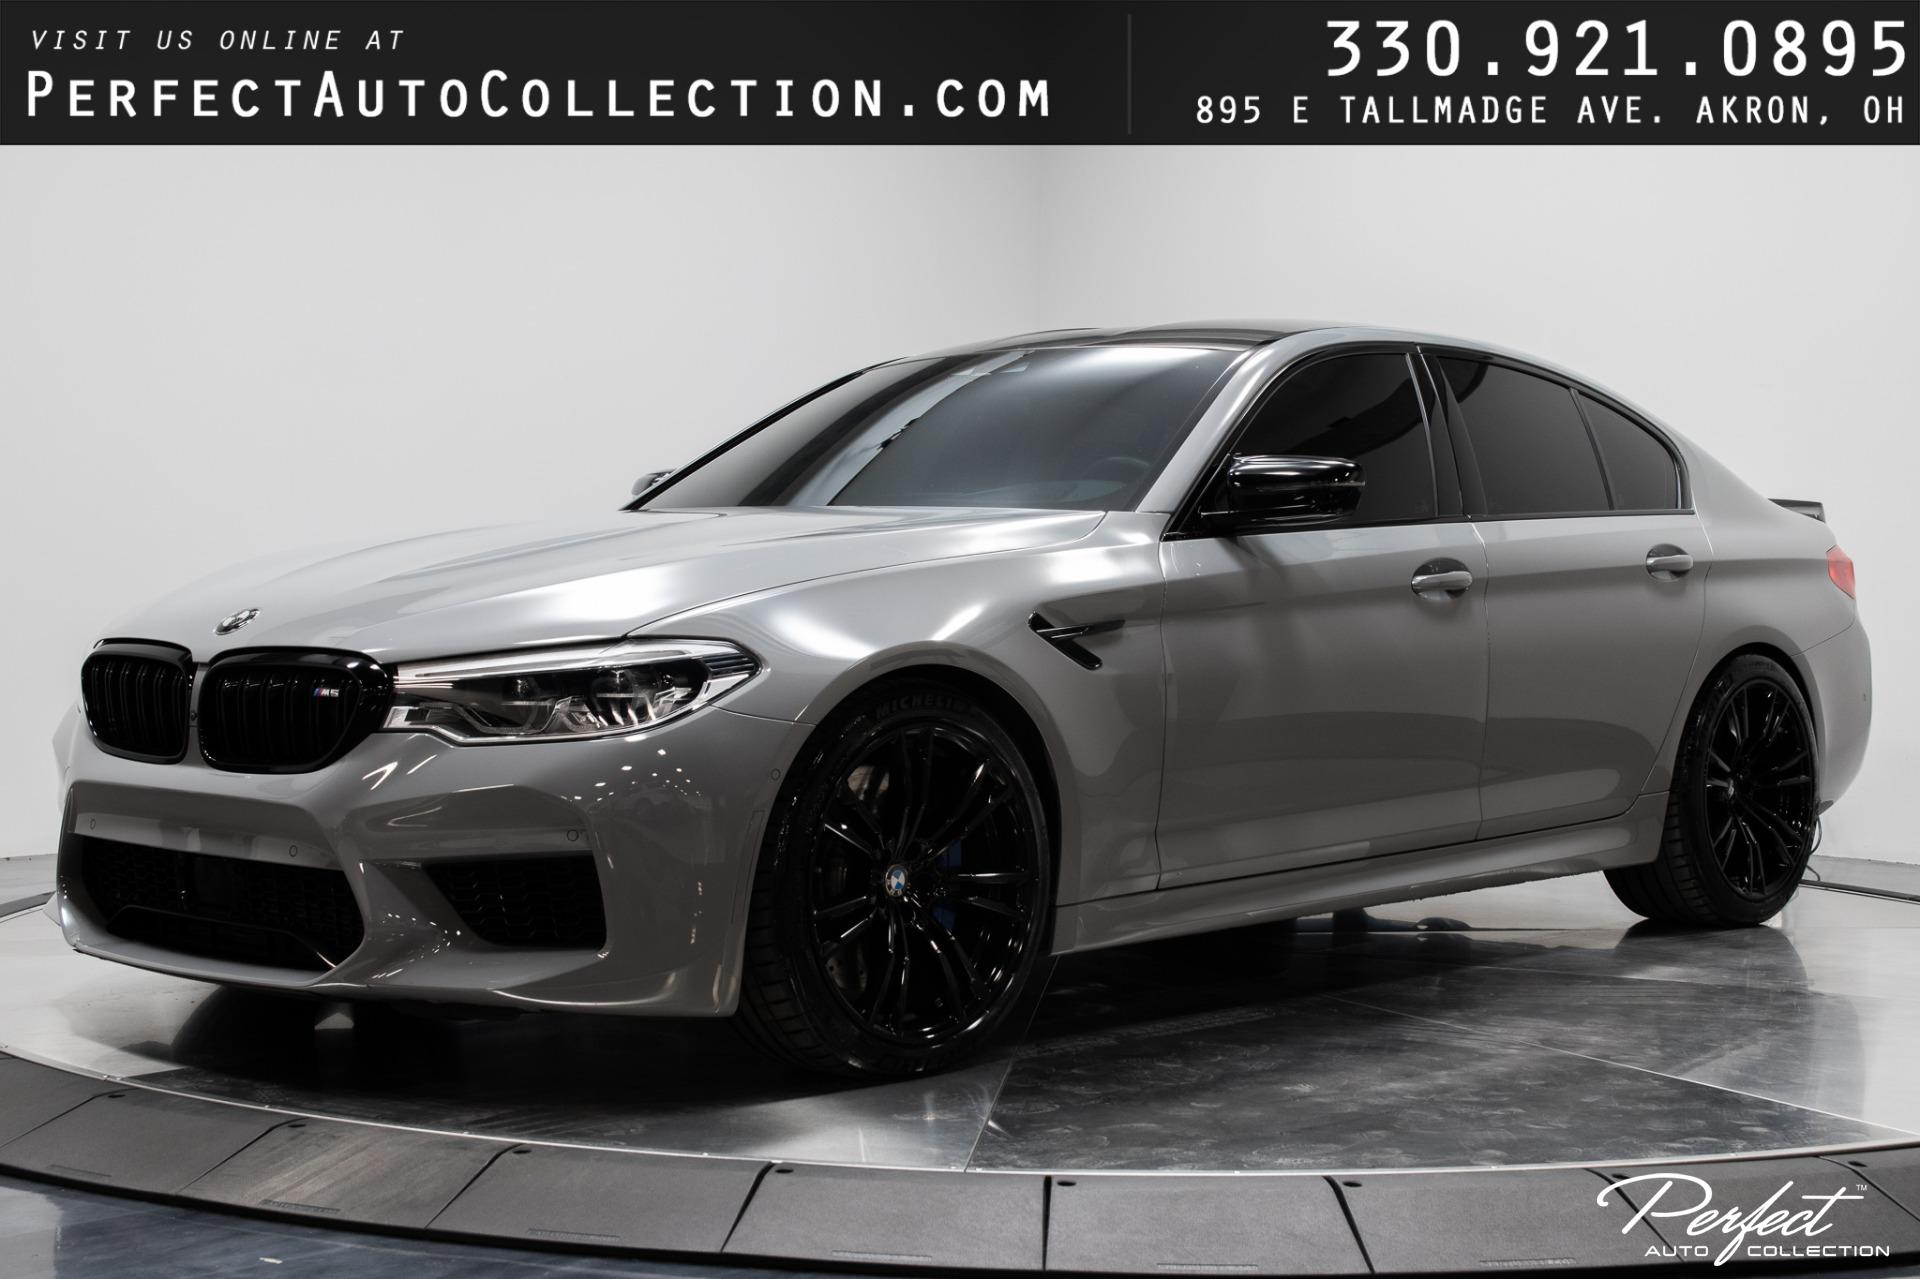 Used 2019 Bmw M5 Competition For Sale 99 885 Perfect Auto Collection Stock 446613